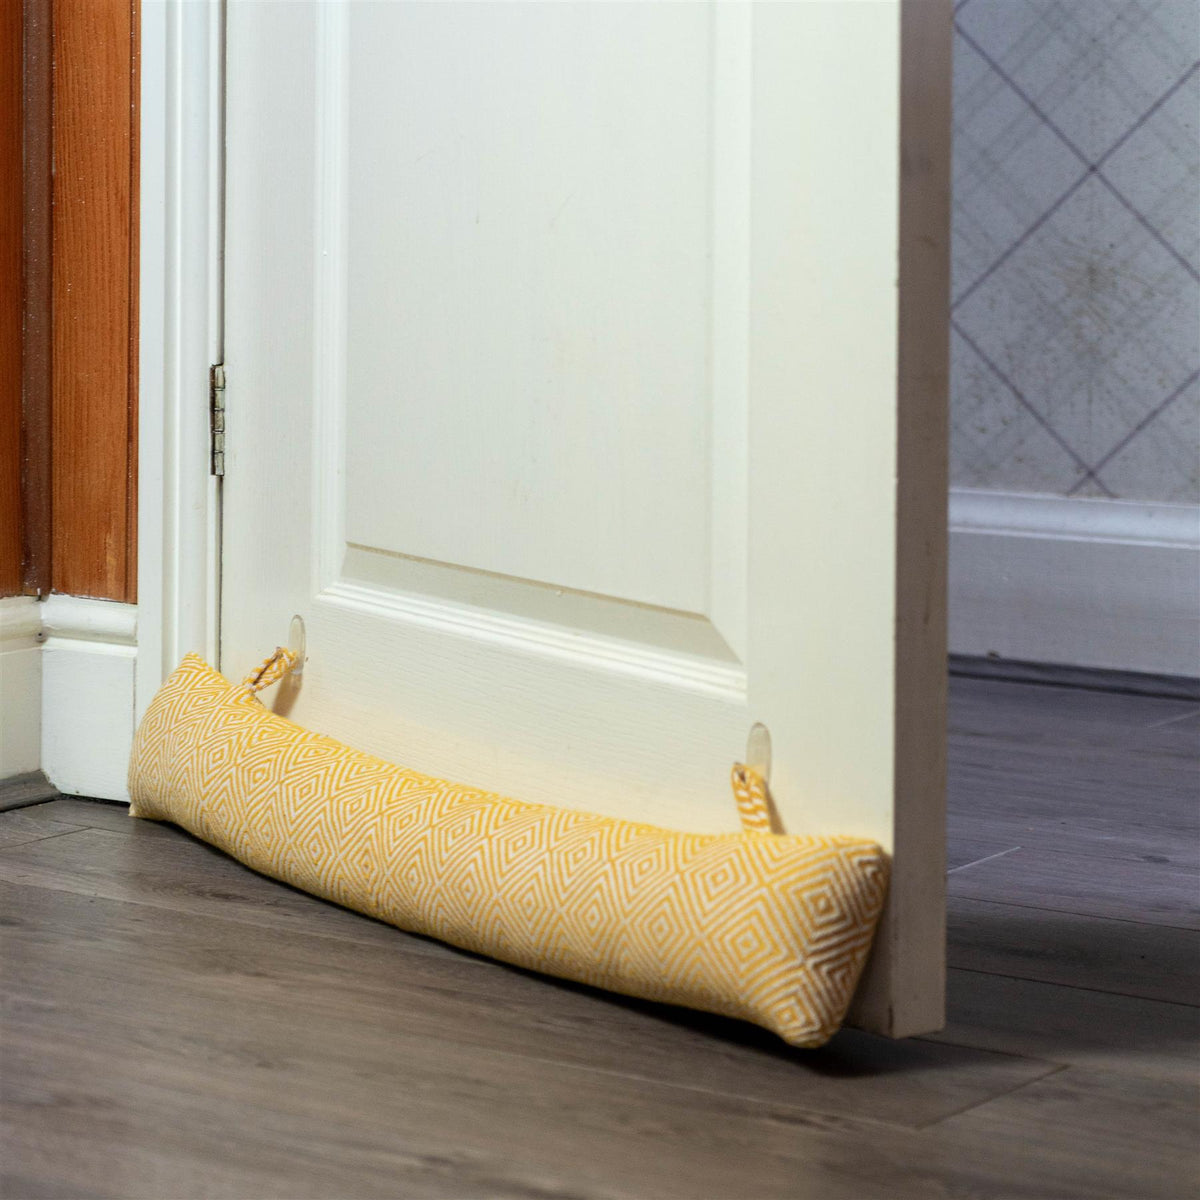 Nicola Spring Decorative Draught Excluder Yellow 80cm Interior Door Lifestyle